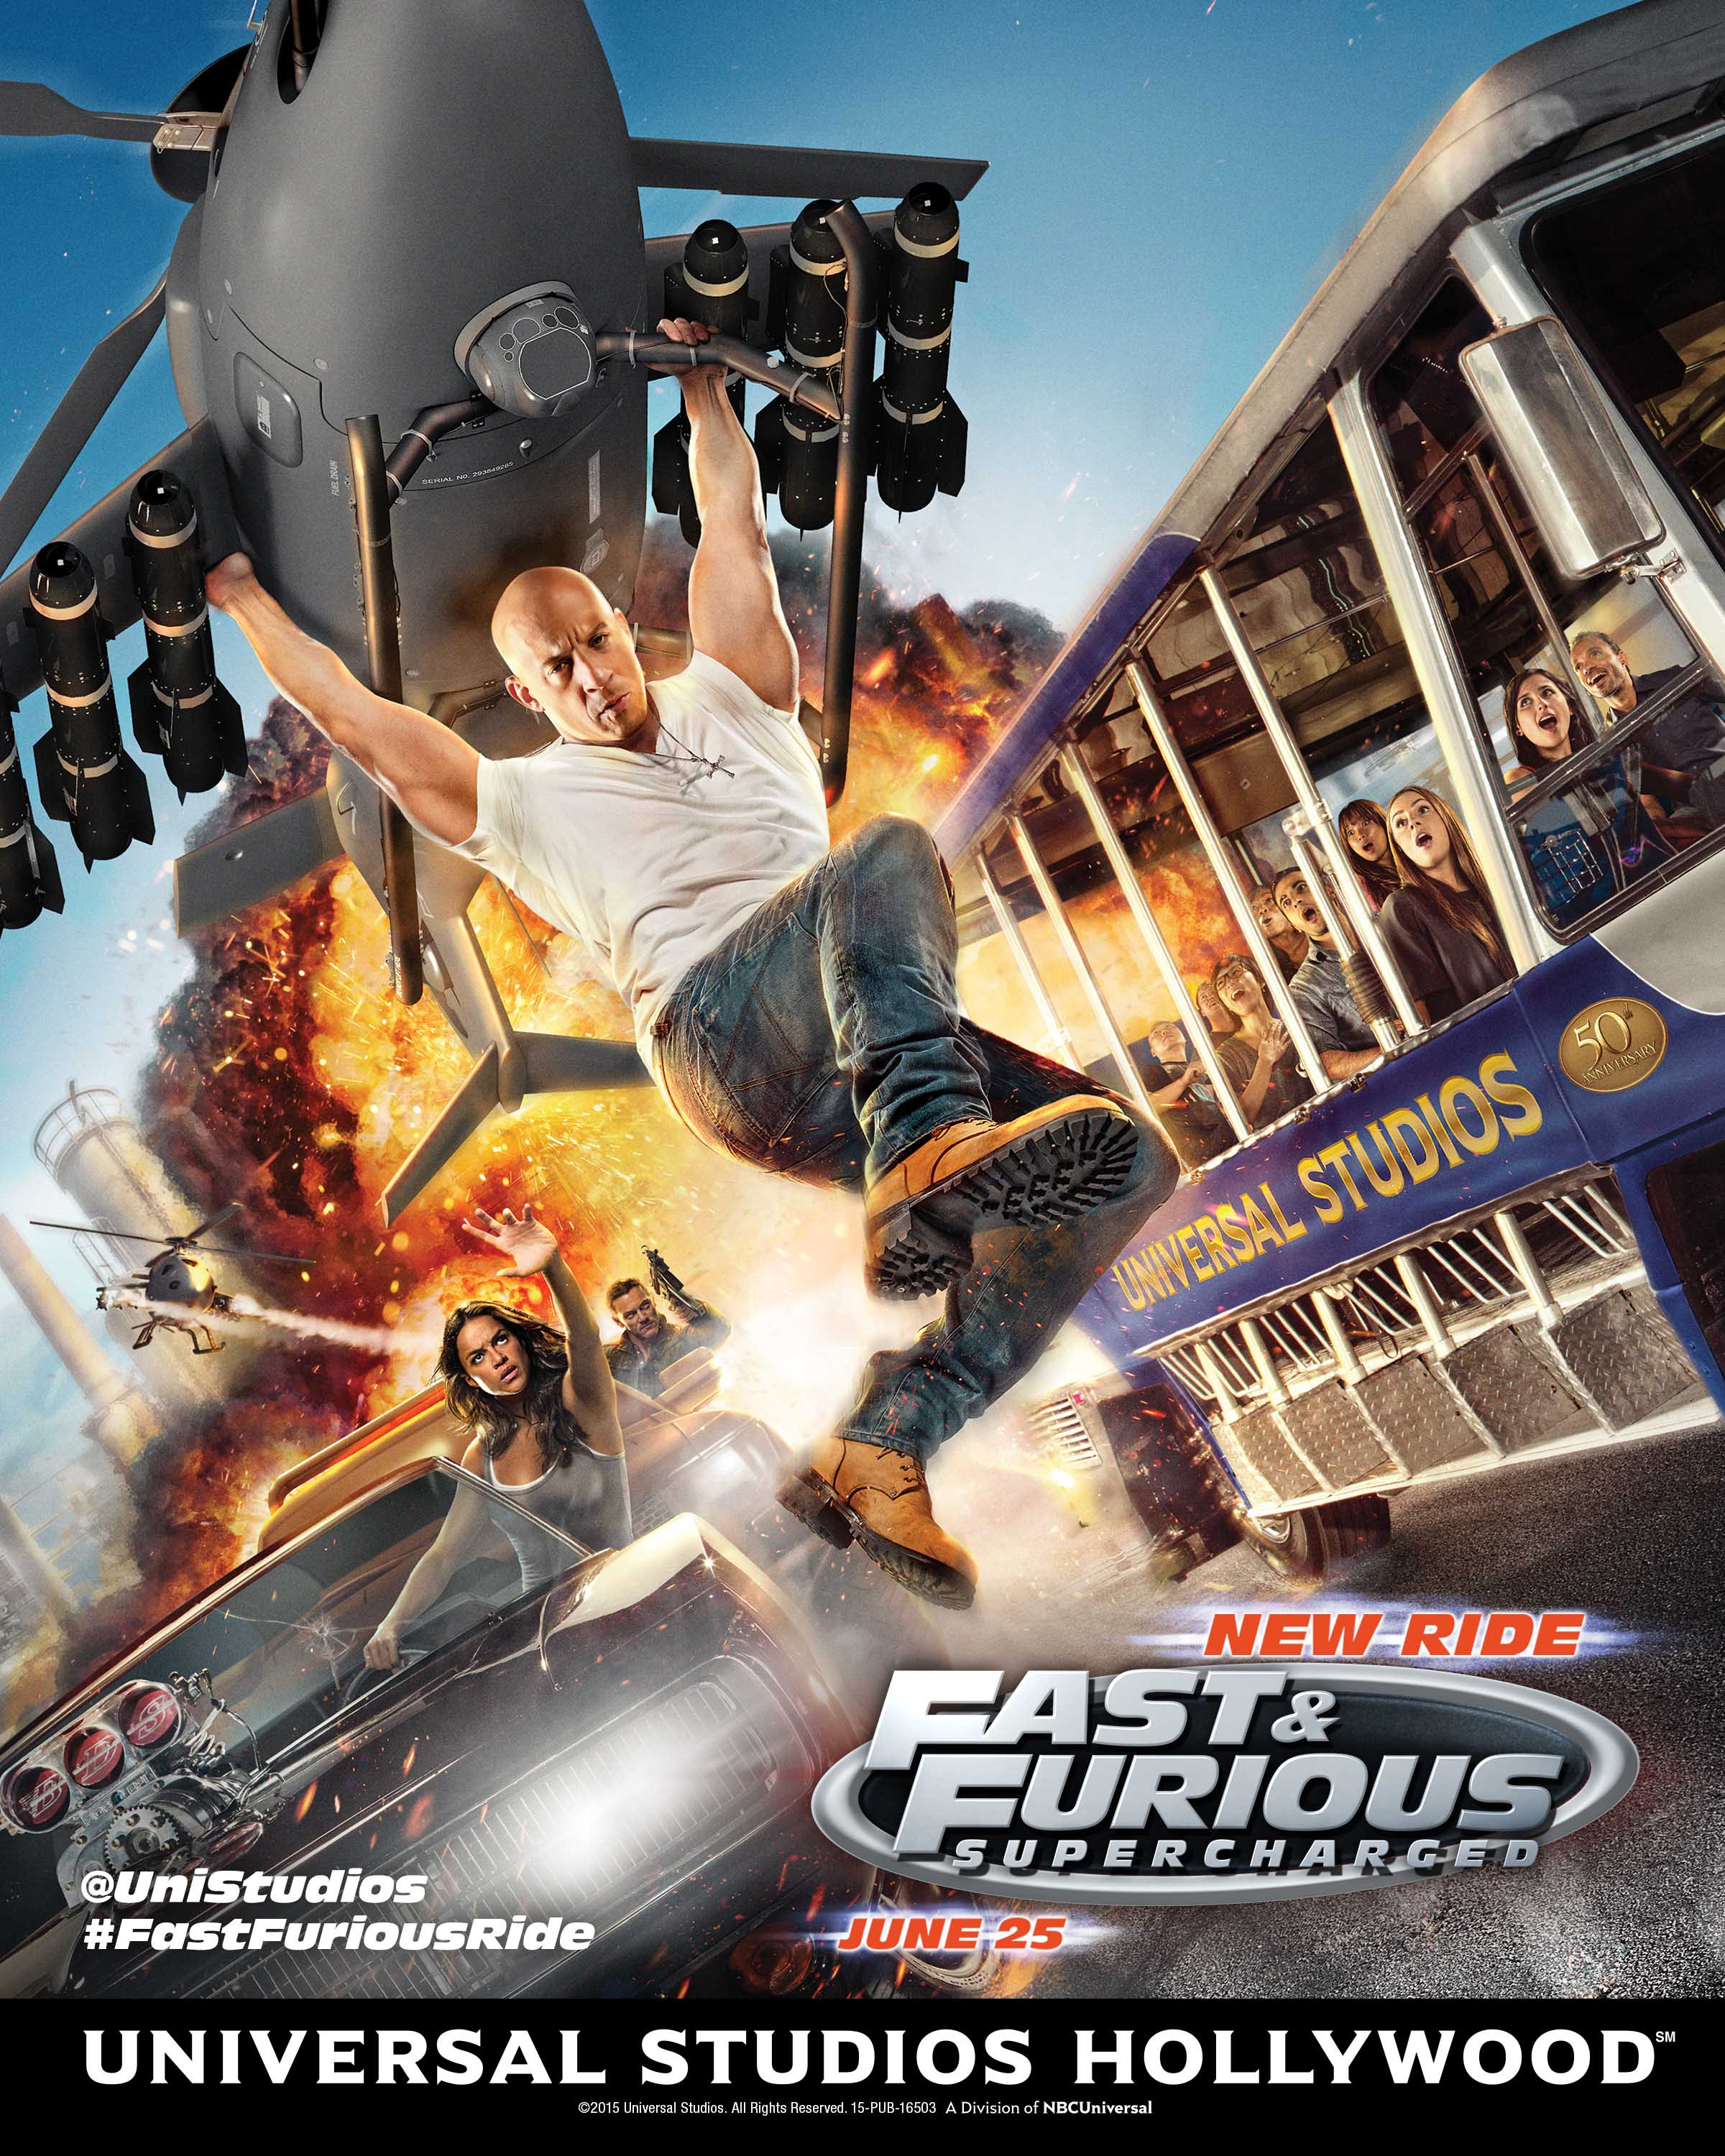 the fast and furious world of action movies directed by john woo